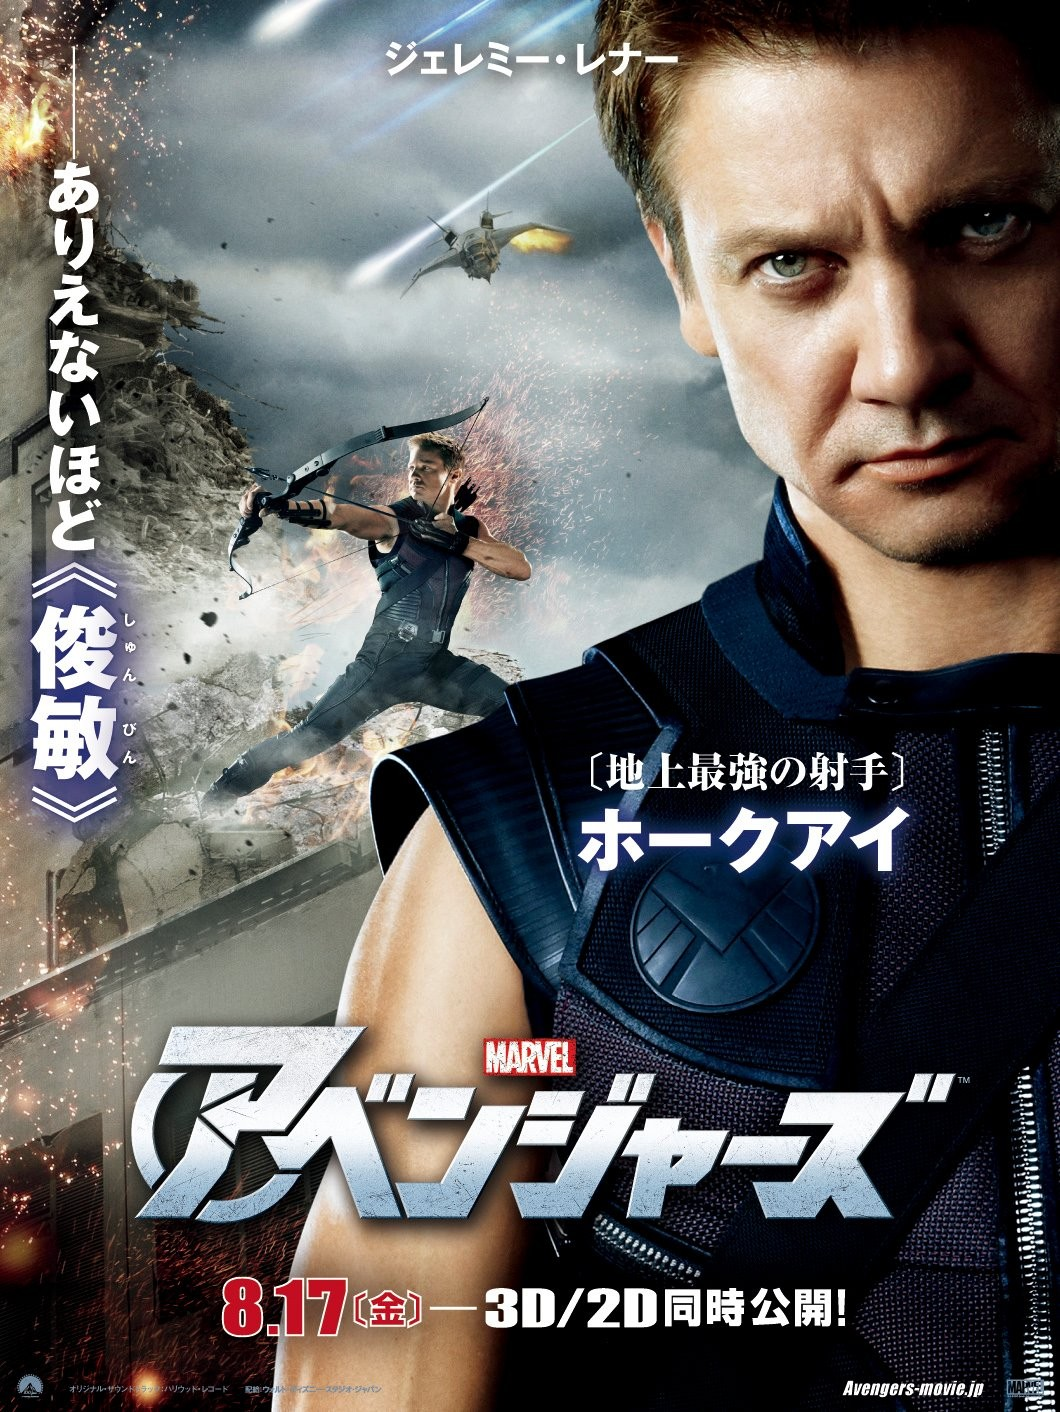 The Avengers - Hawkeye poster - Japan